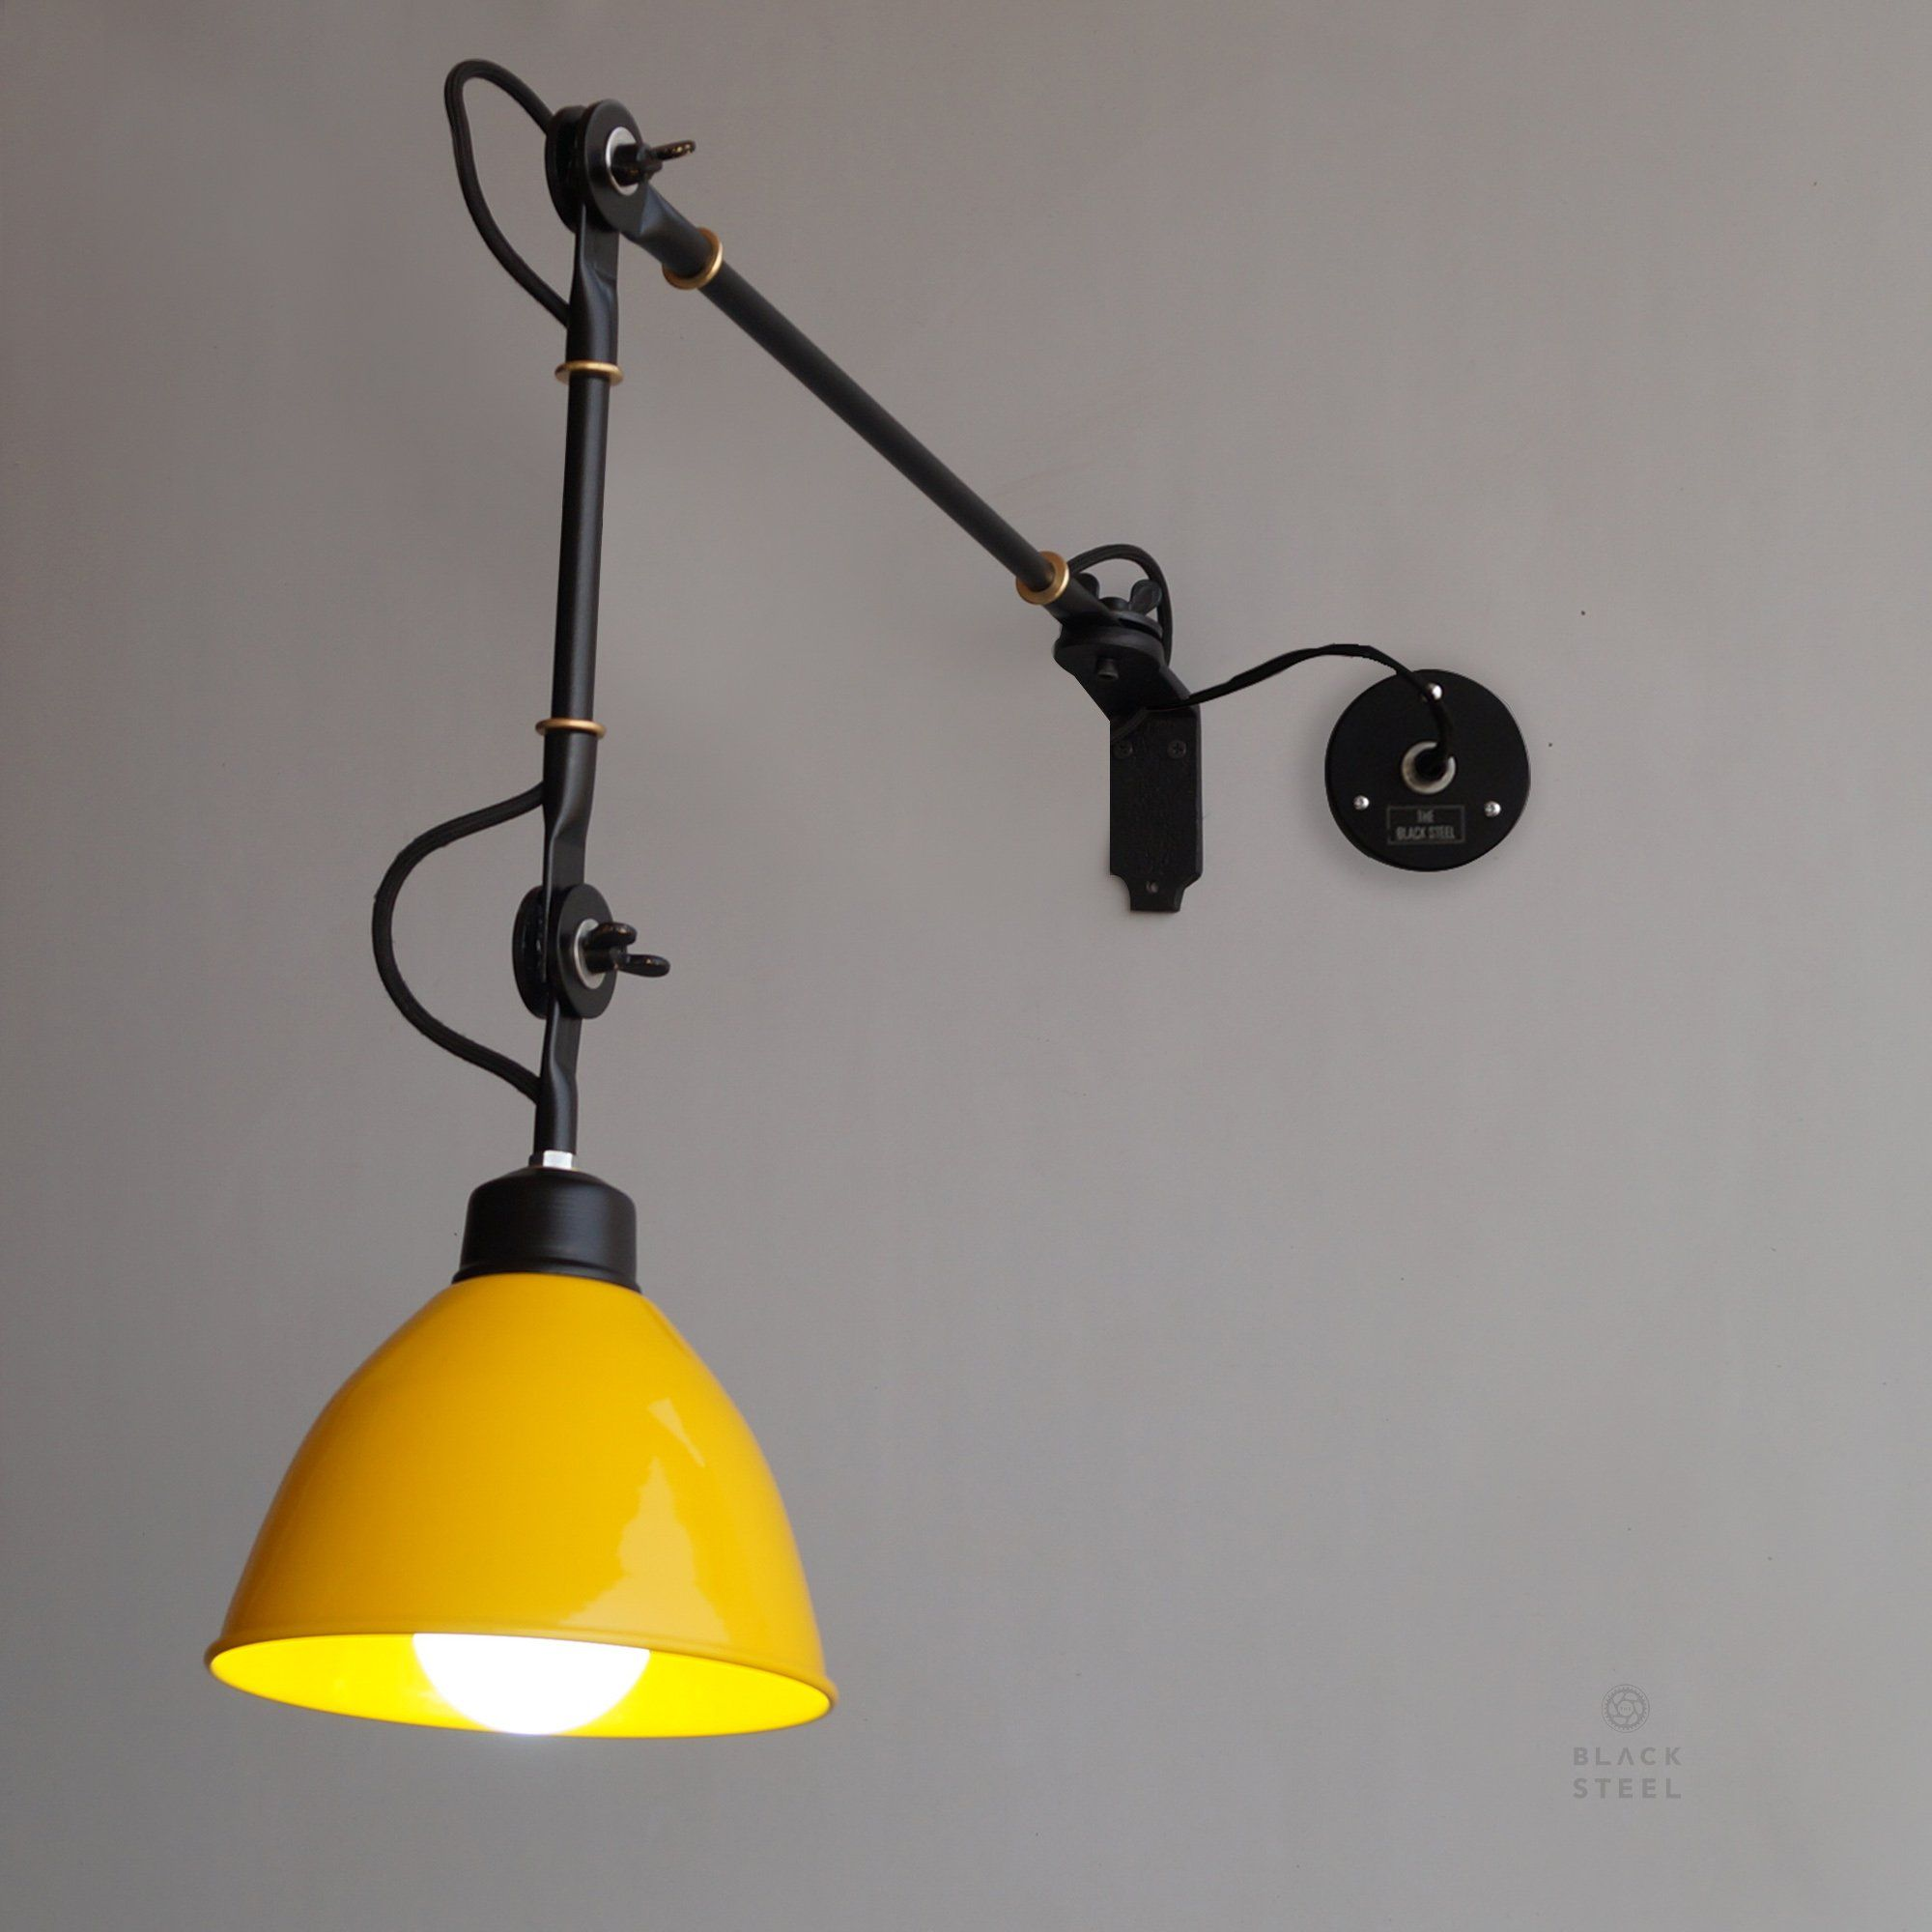 Yellow Wall Sconce De Stijl Inspired Swing Arm Wall Mounted Light